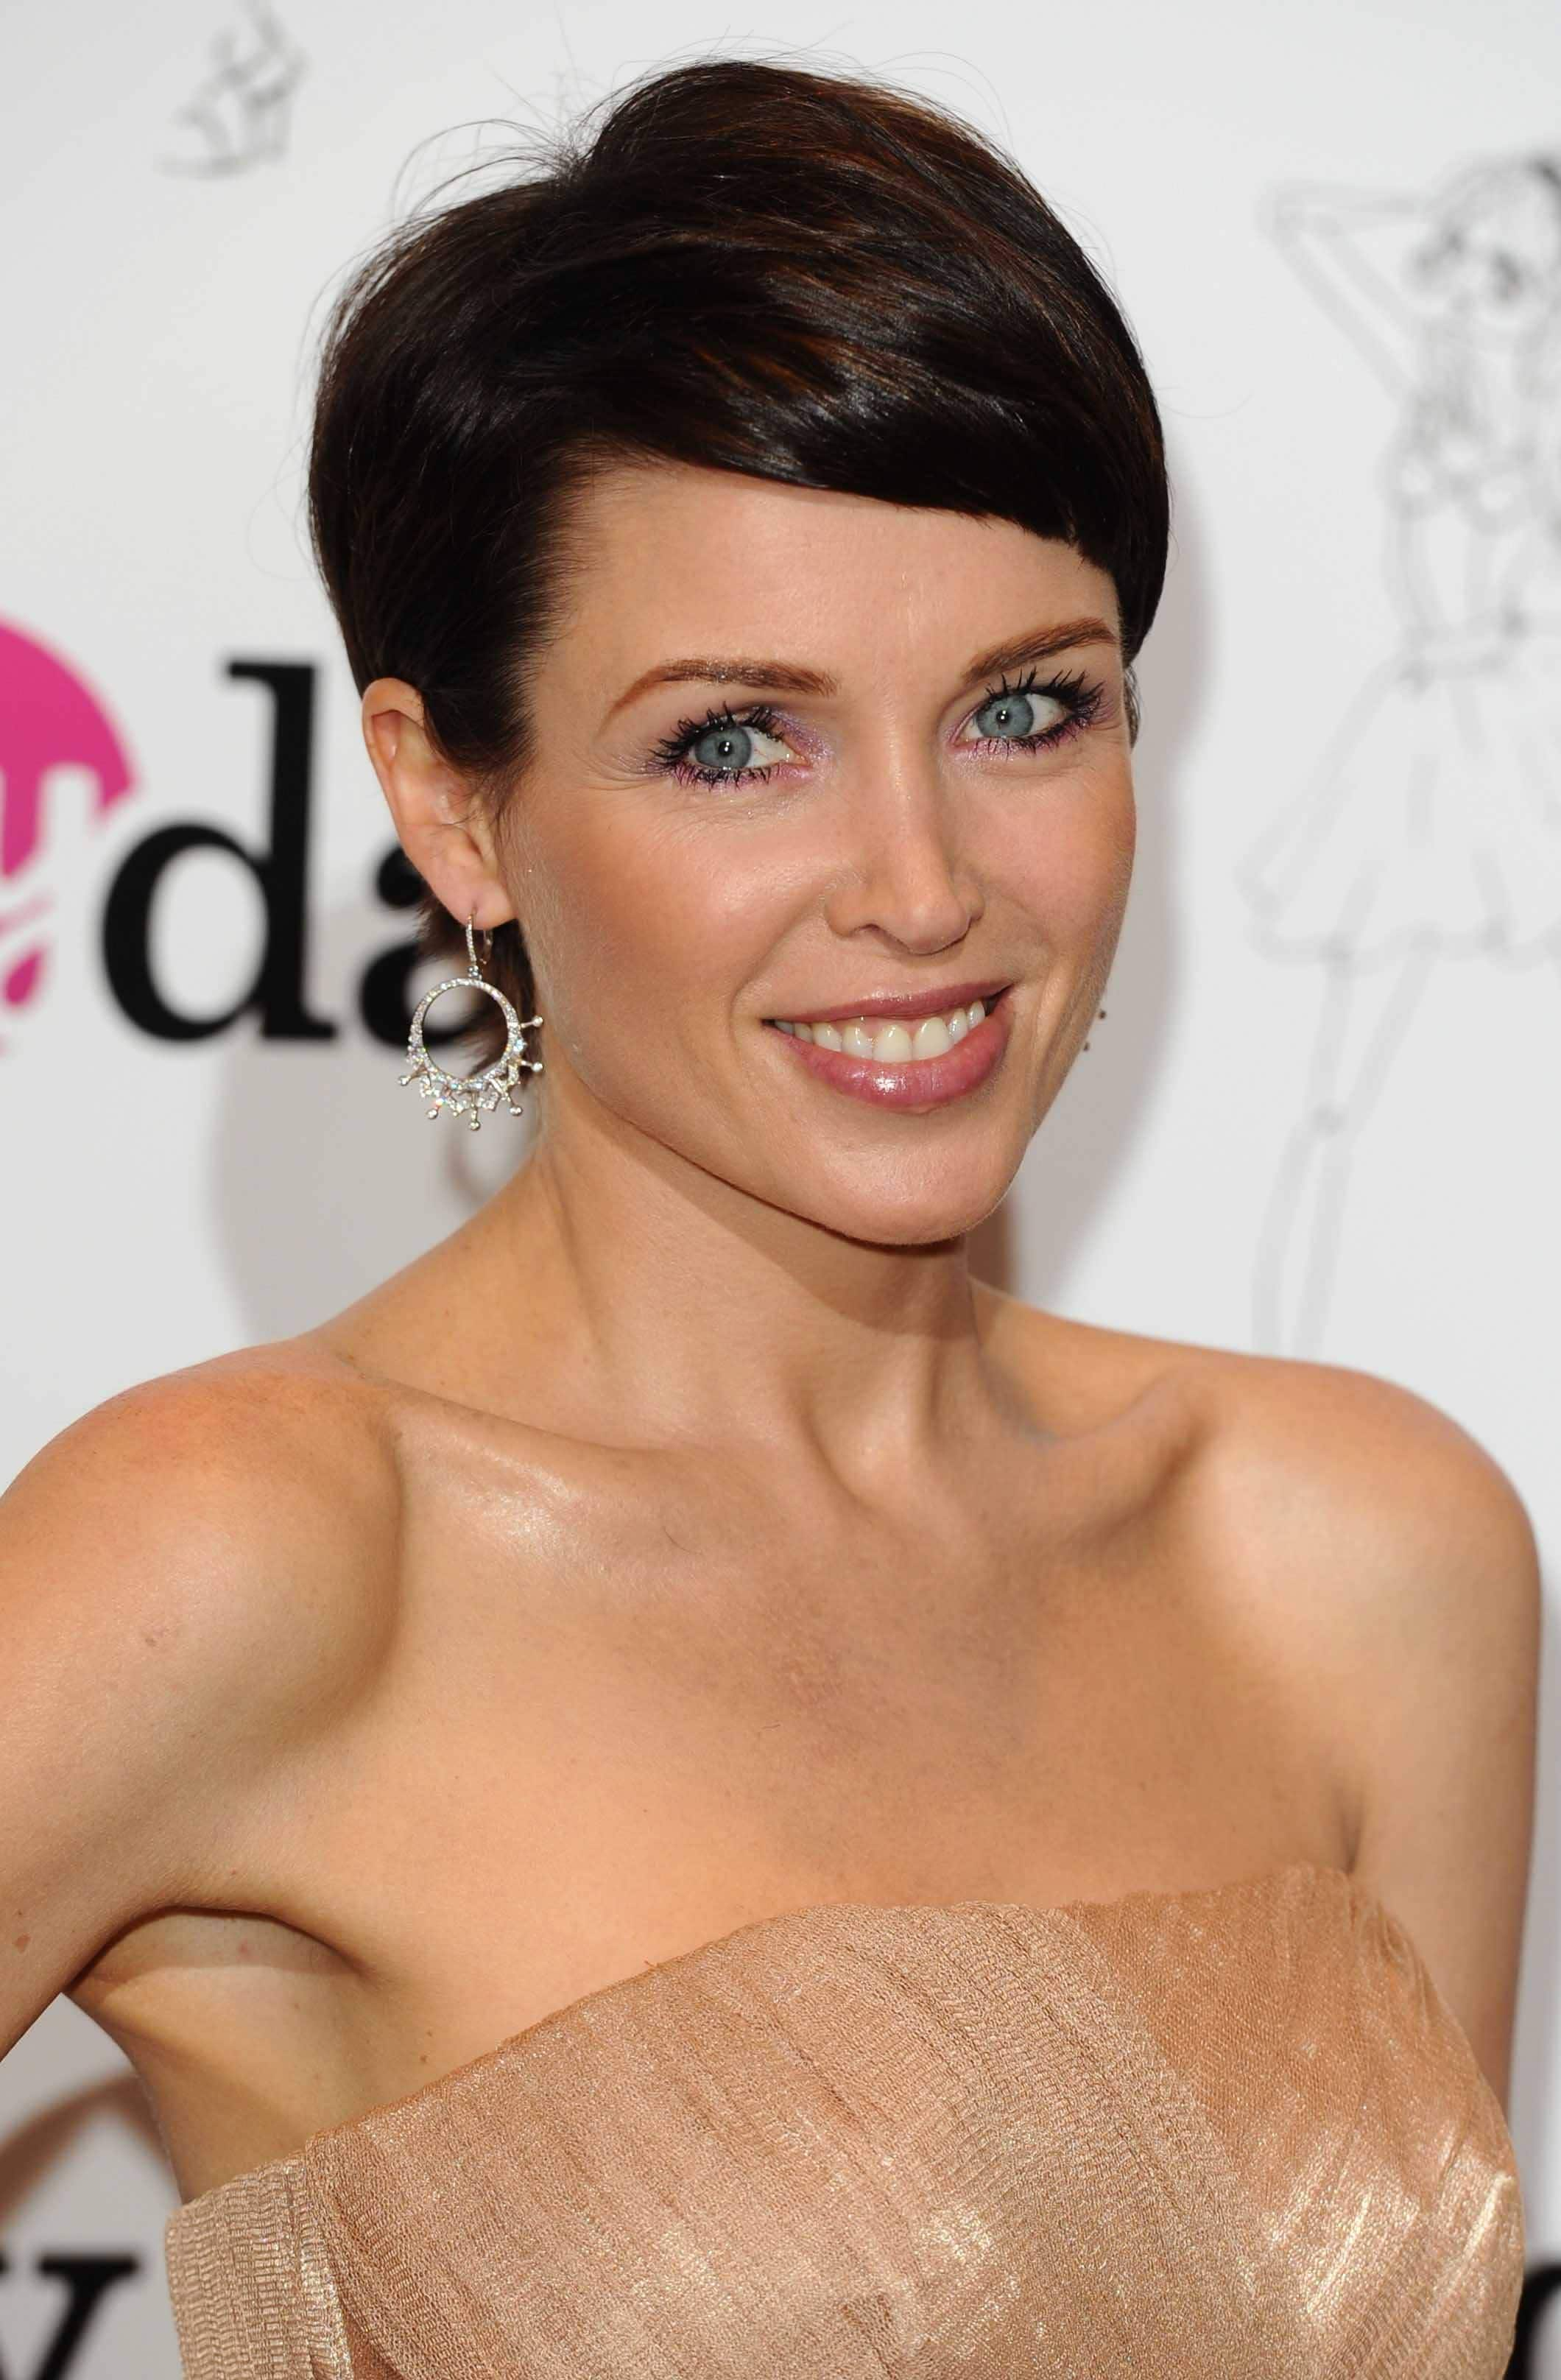 Pixie crop hairstyles Dannii Minogue. Credit Rex by Shutterstock